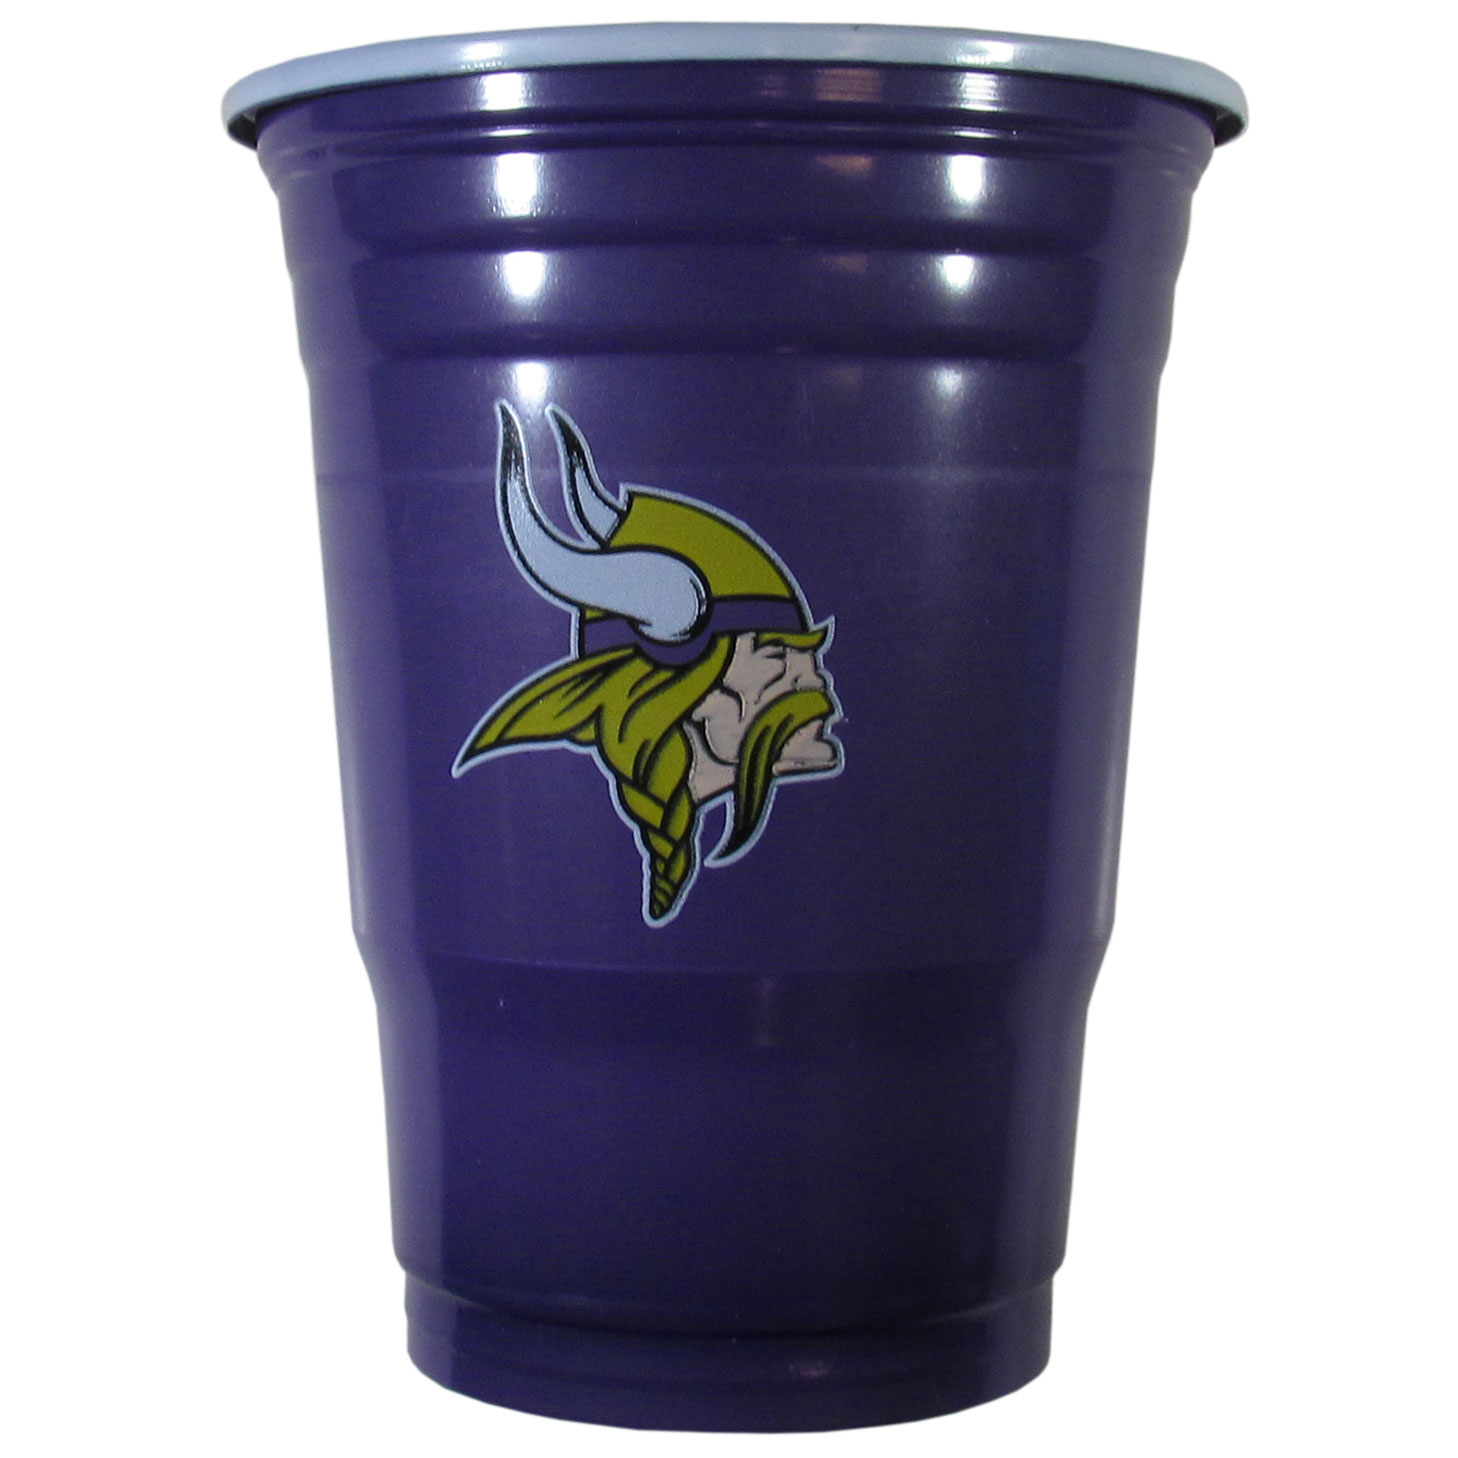 Planet Sports Team Minnesota Vikings Plastic Game Day Cups